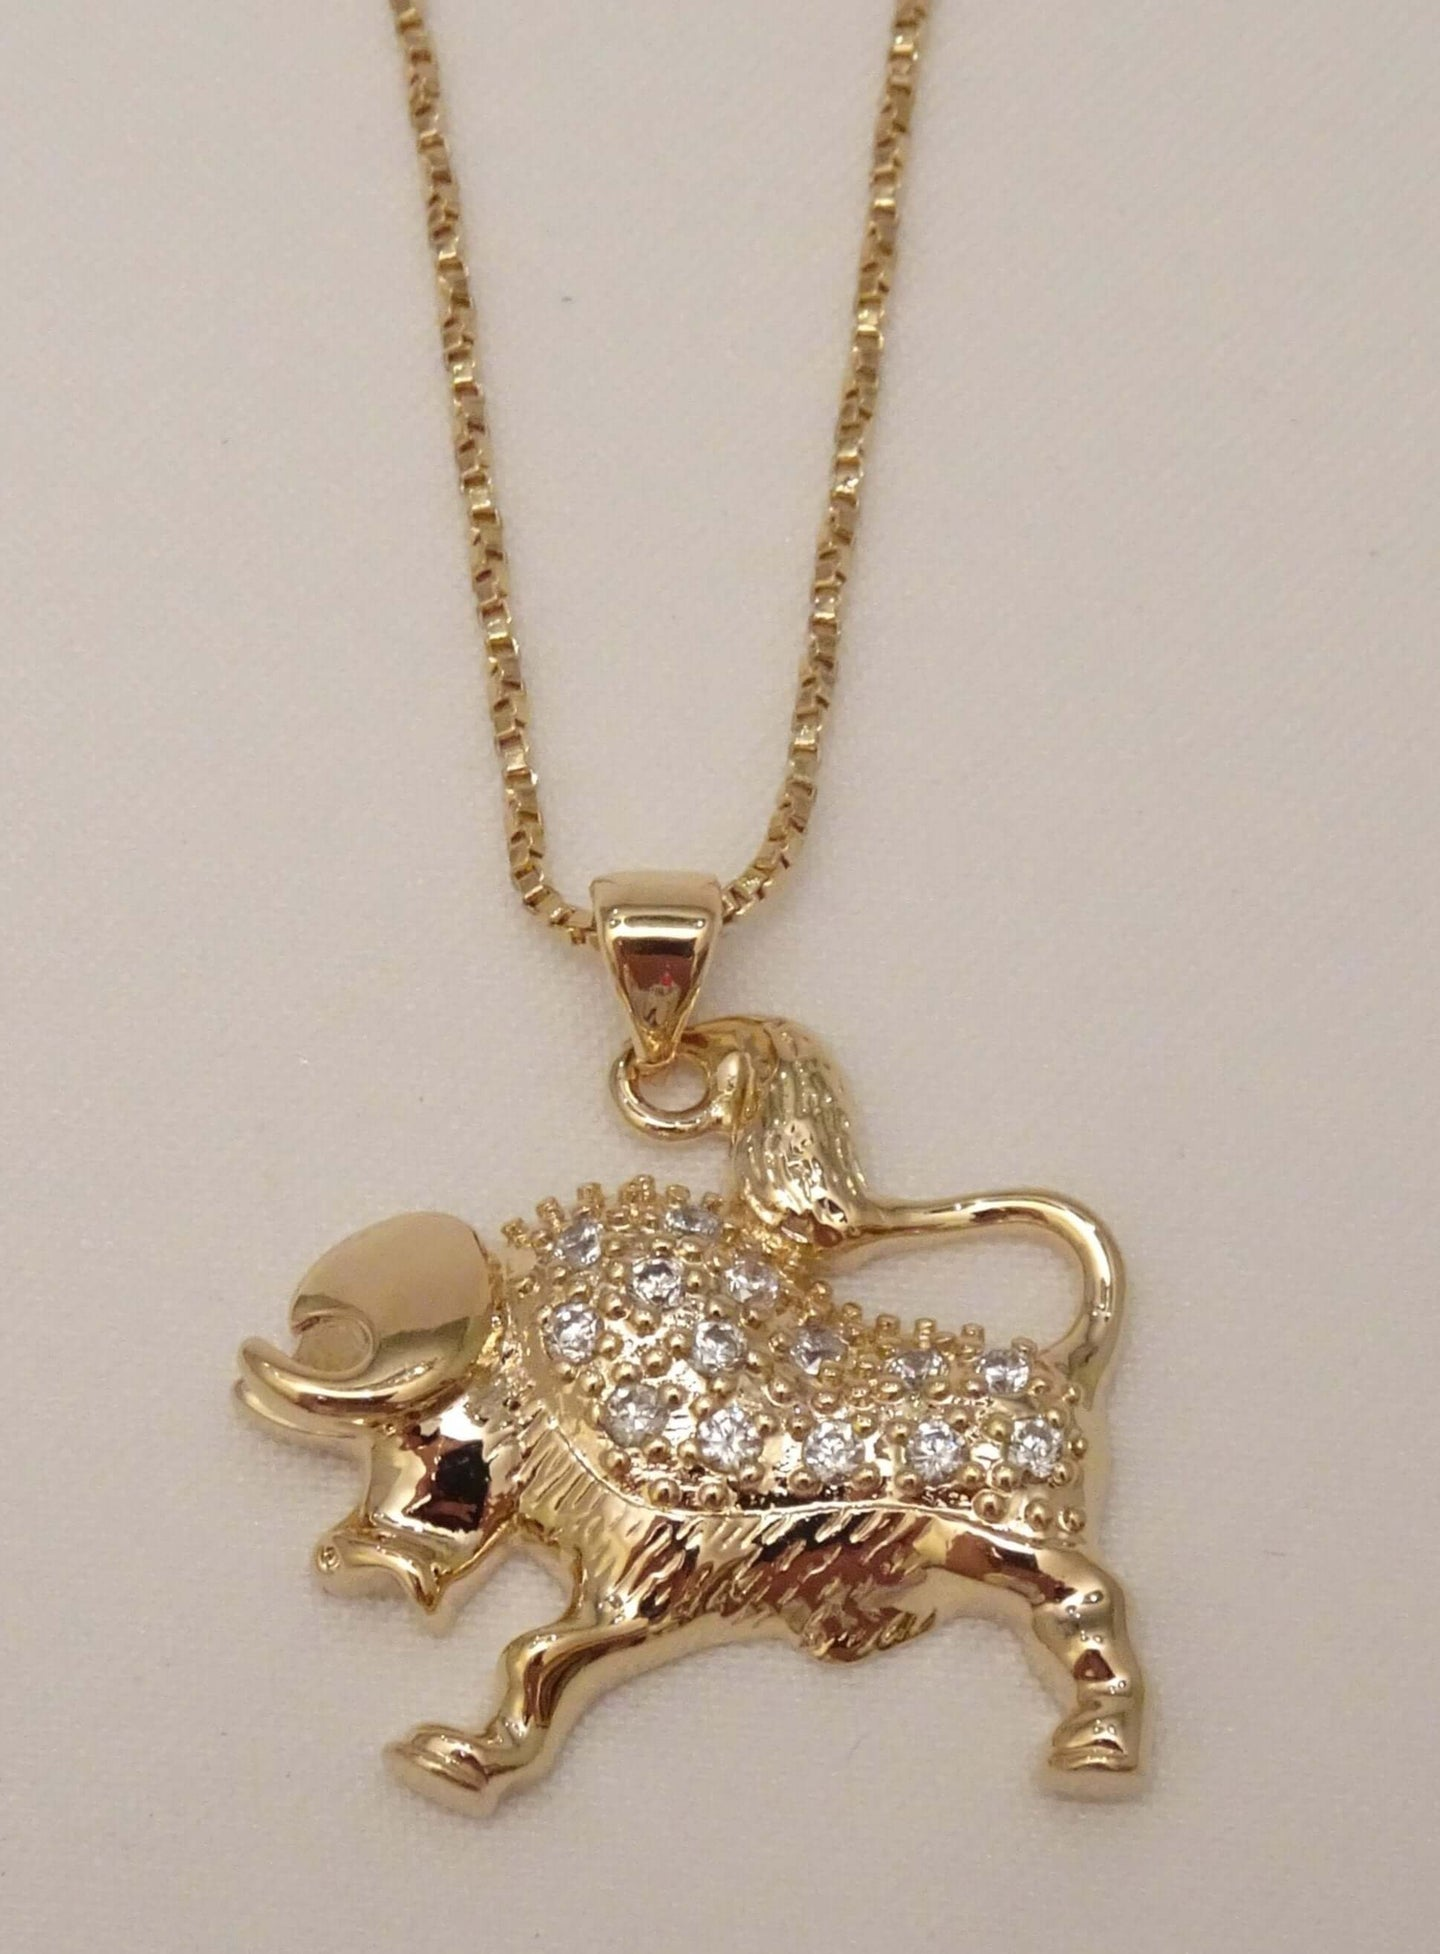 taurus jewelry, taurus zodiac jewelry, taurus necklace, taurus necklace gold, taurus necklace silver, taurus zodiac necklace, mens taurus necklace, taurus necklace for men, zodiac sign necklace, zodiac necklace gold, zodiac pendant necklace